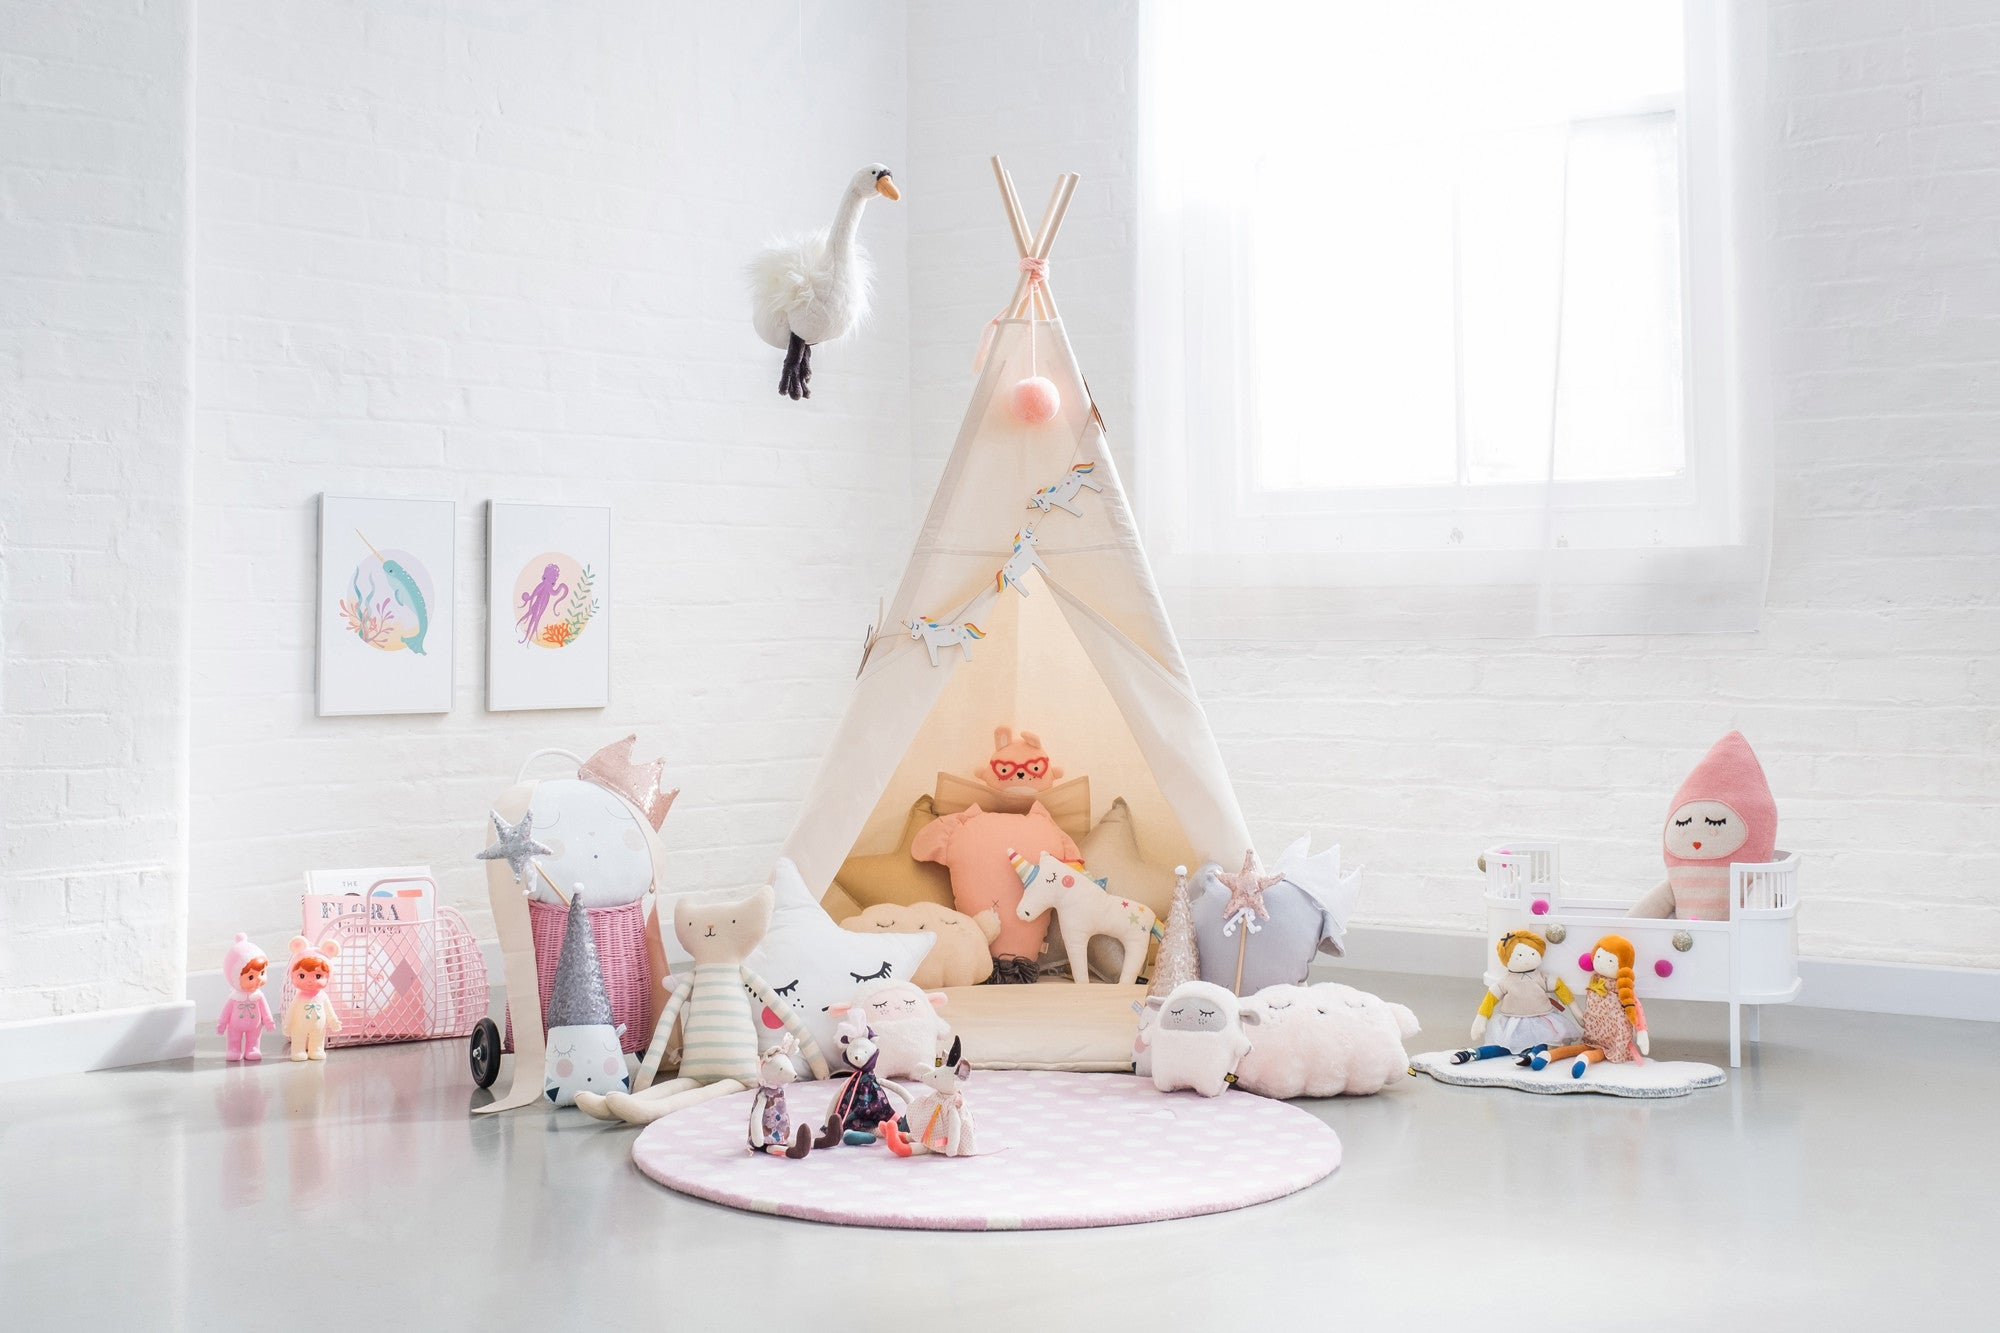 A Magic Tent Children's Play Room, styled by Bobby Rabbit.